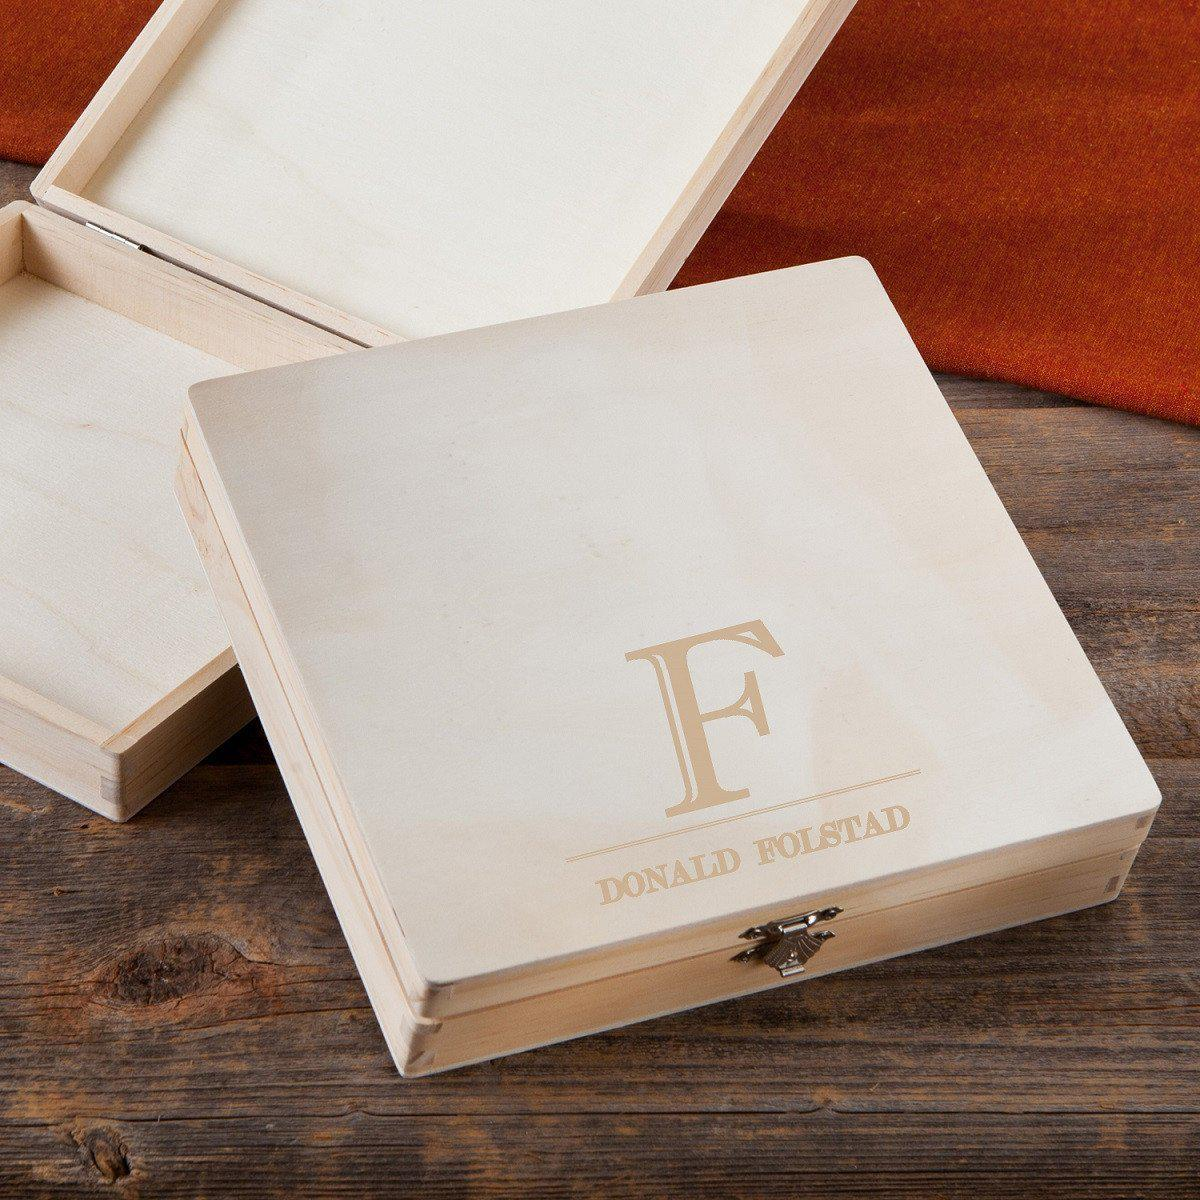 Personalized-Monogrammed-Wooden-Keepsake-or-Cigar-Box